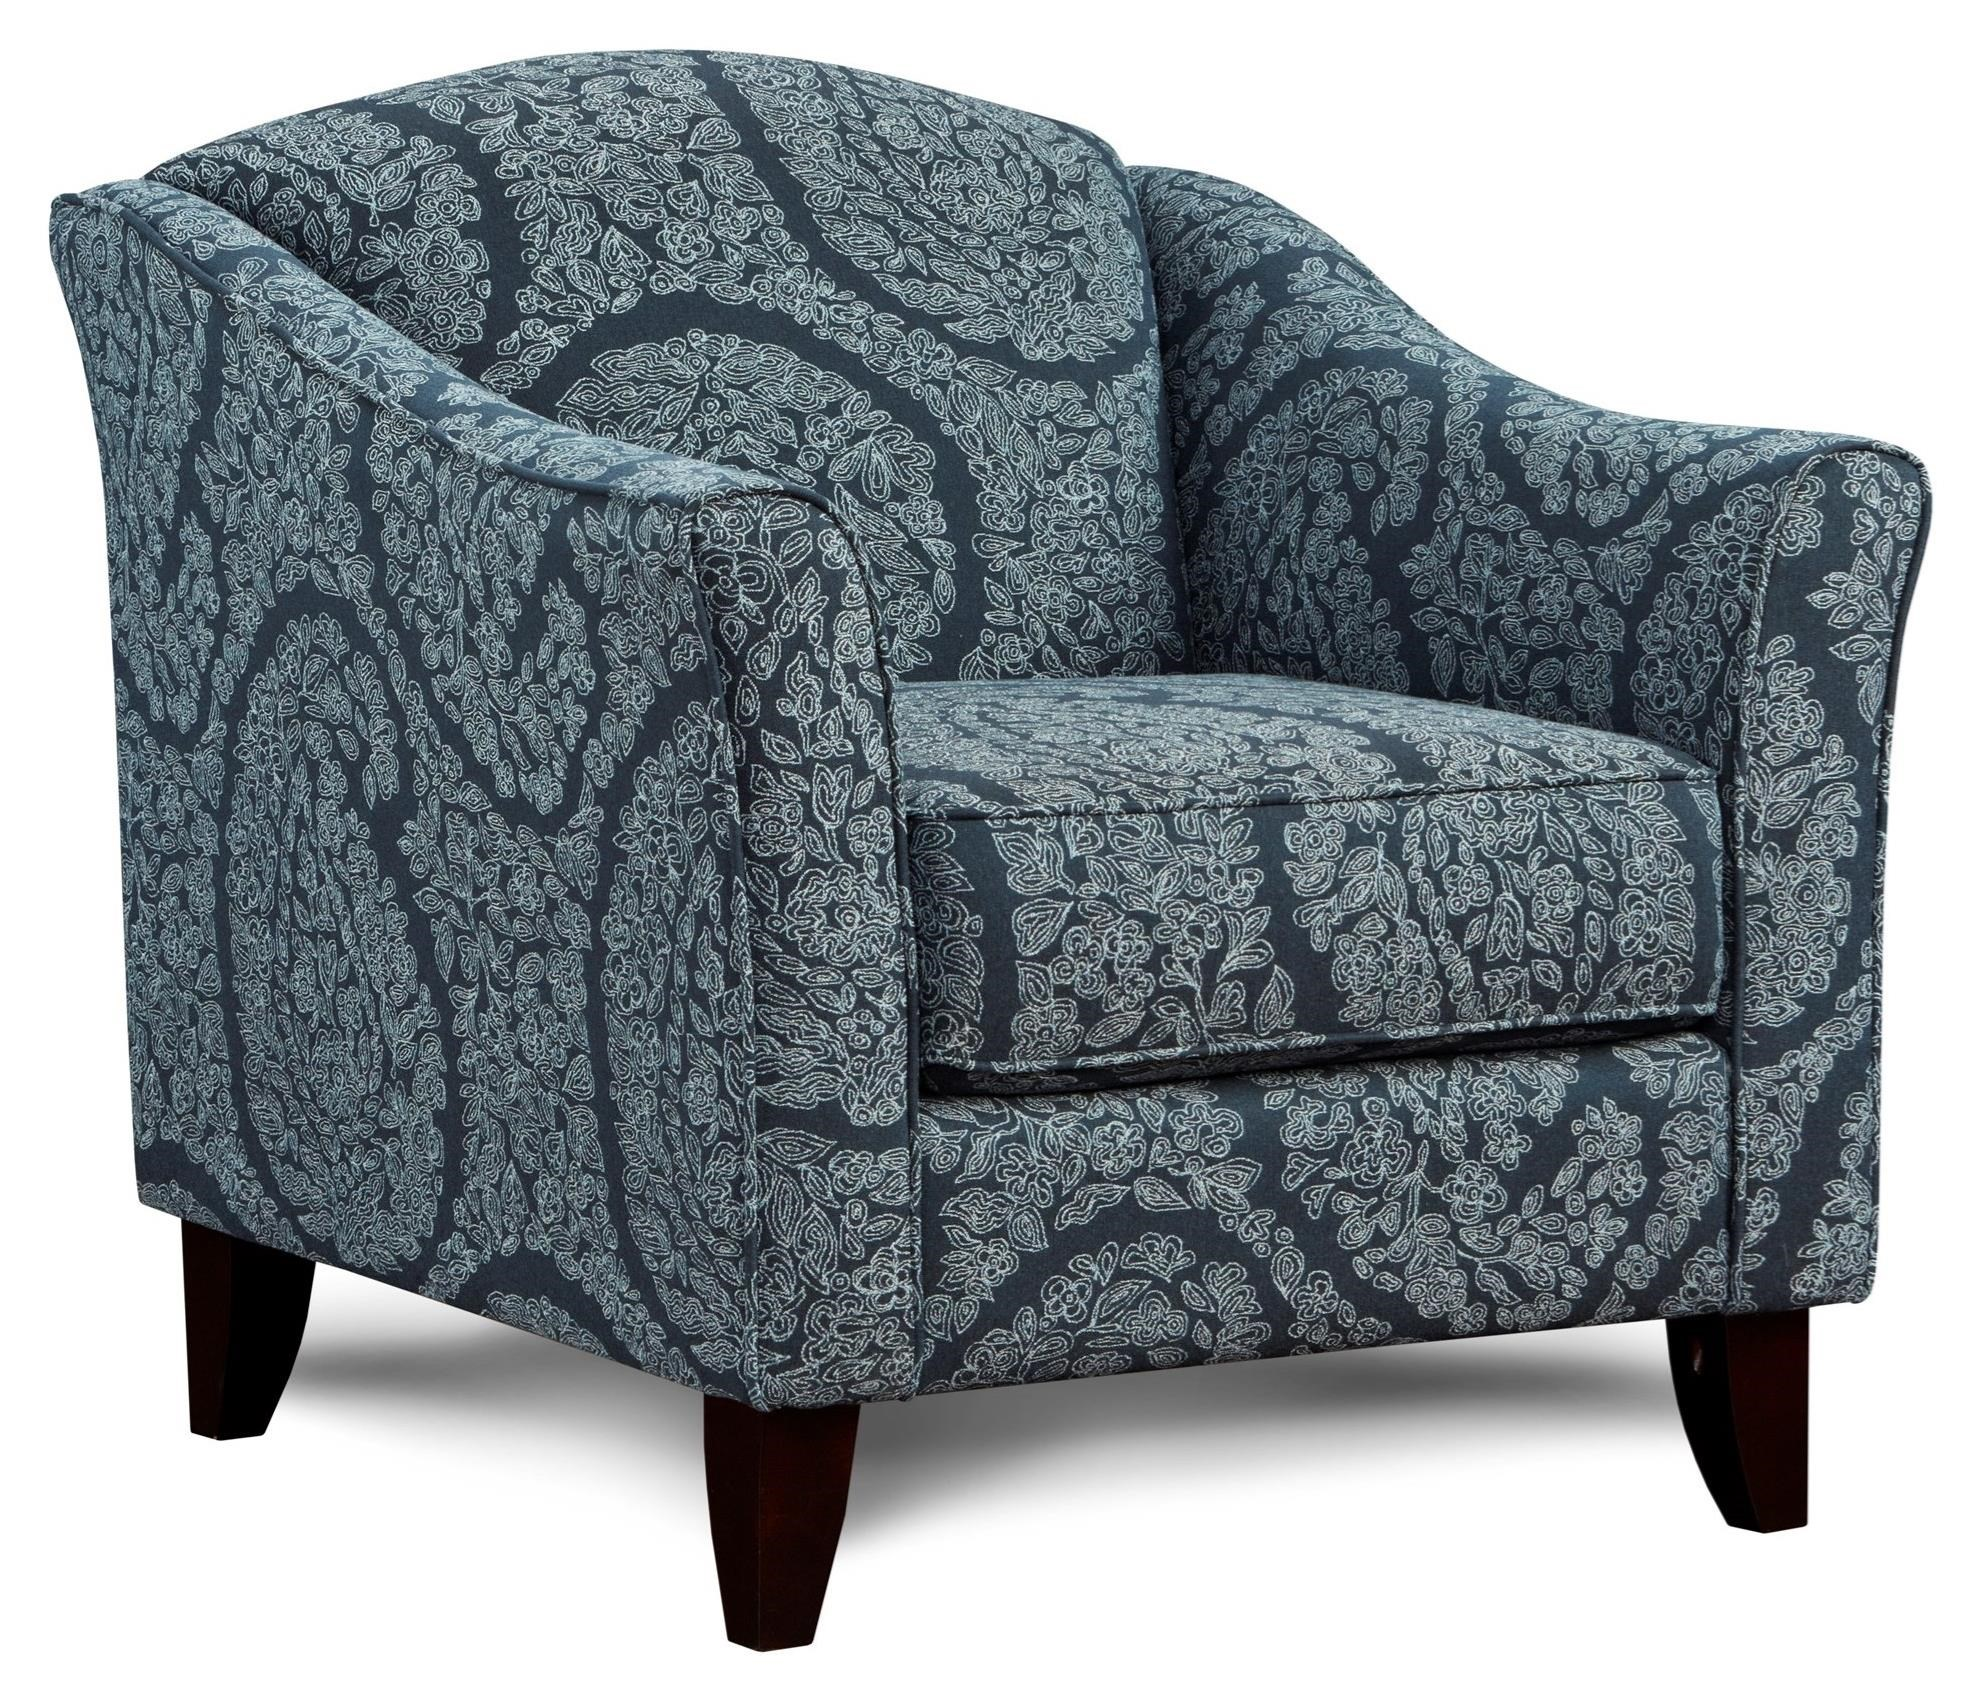 452 Chair by Fusion Furniture at Prime Brothers Furniture